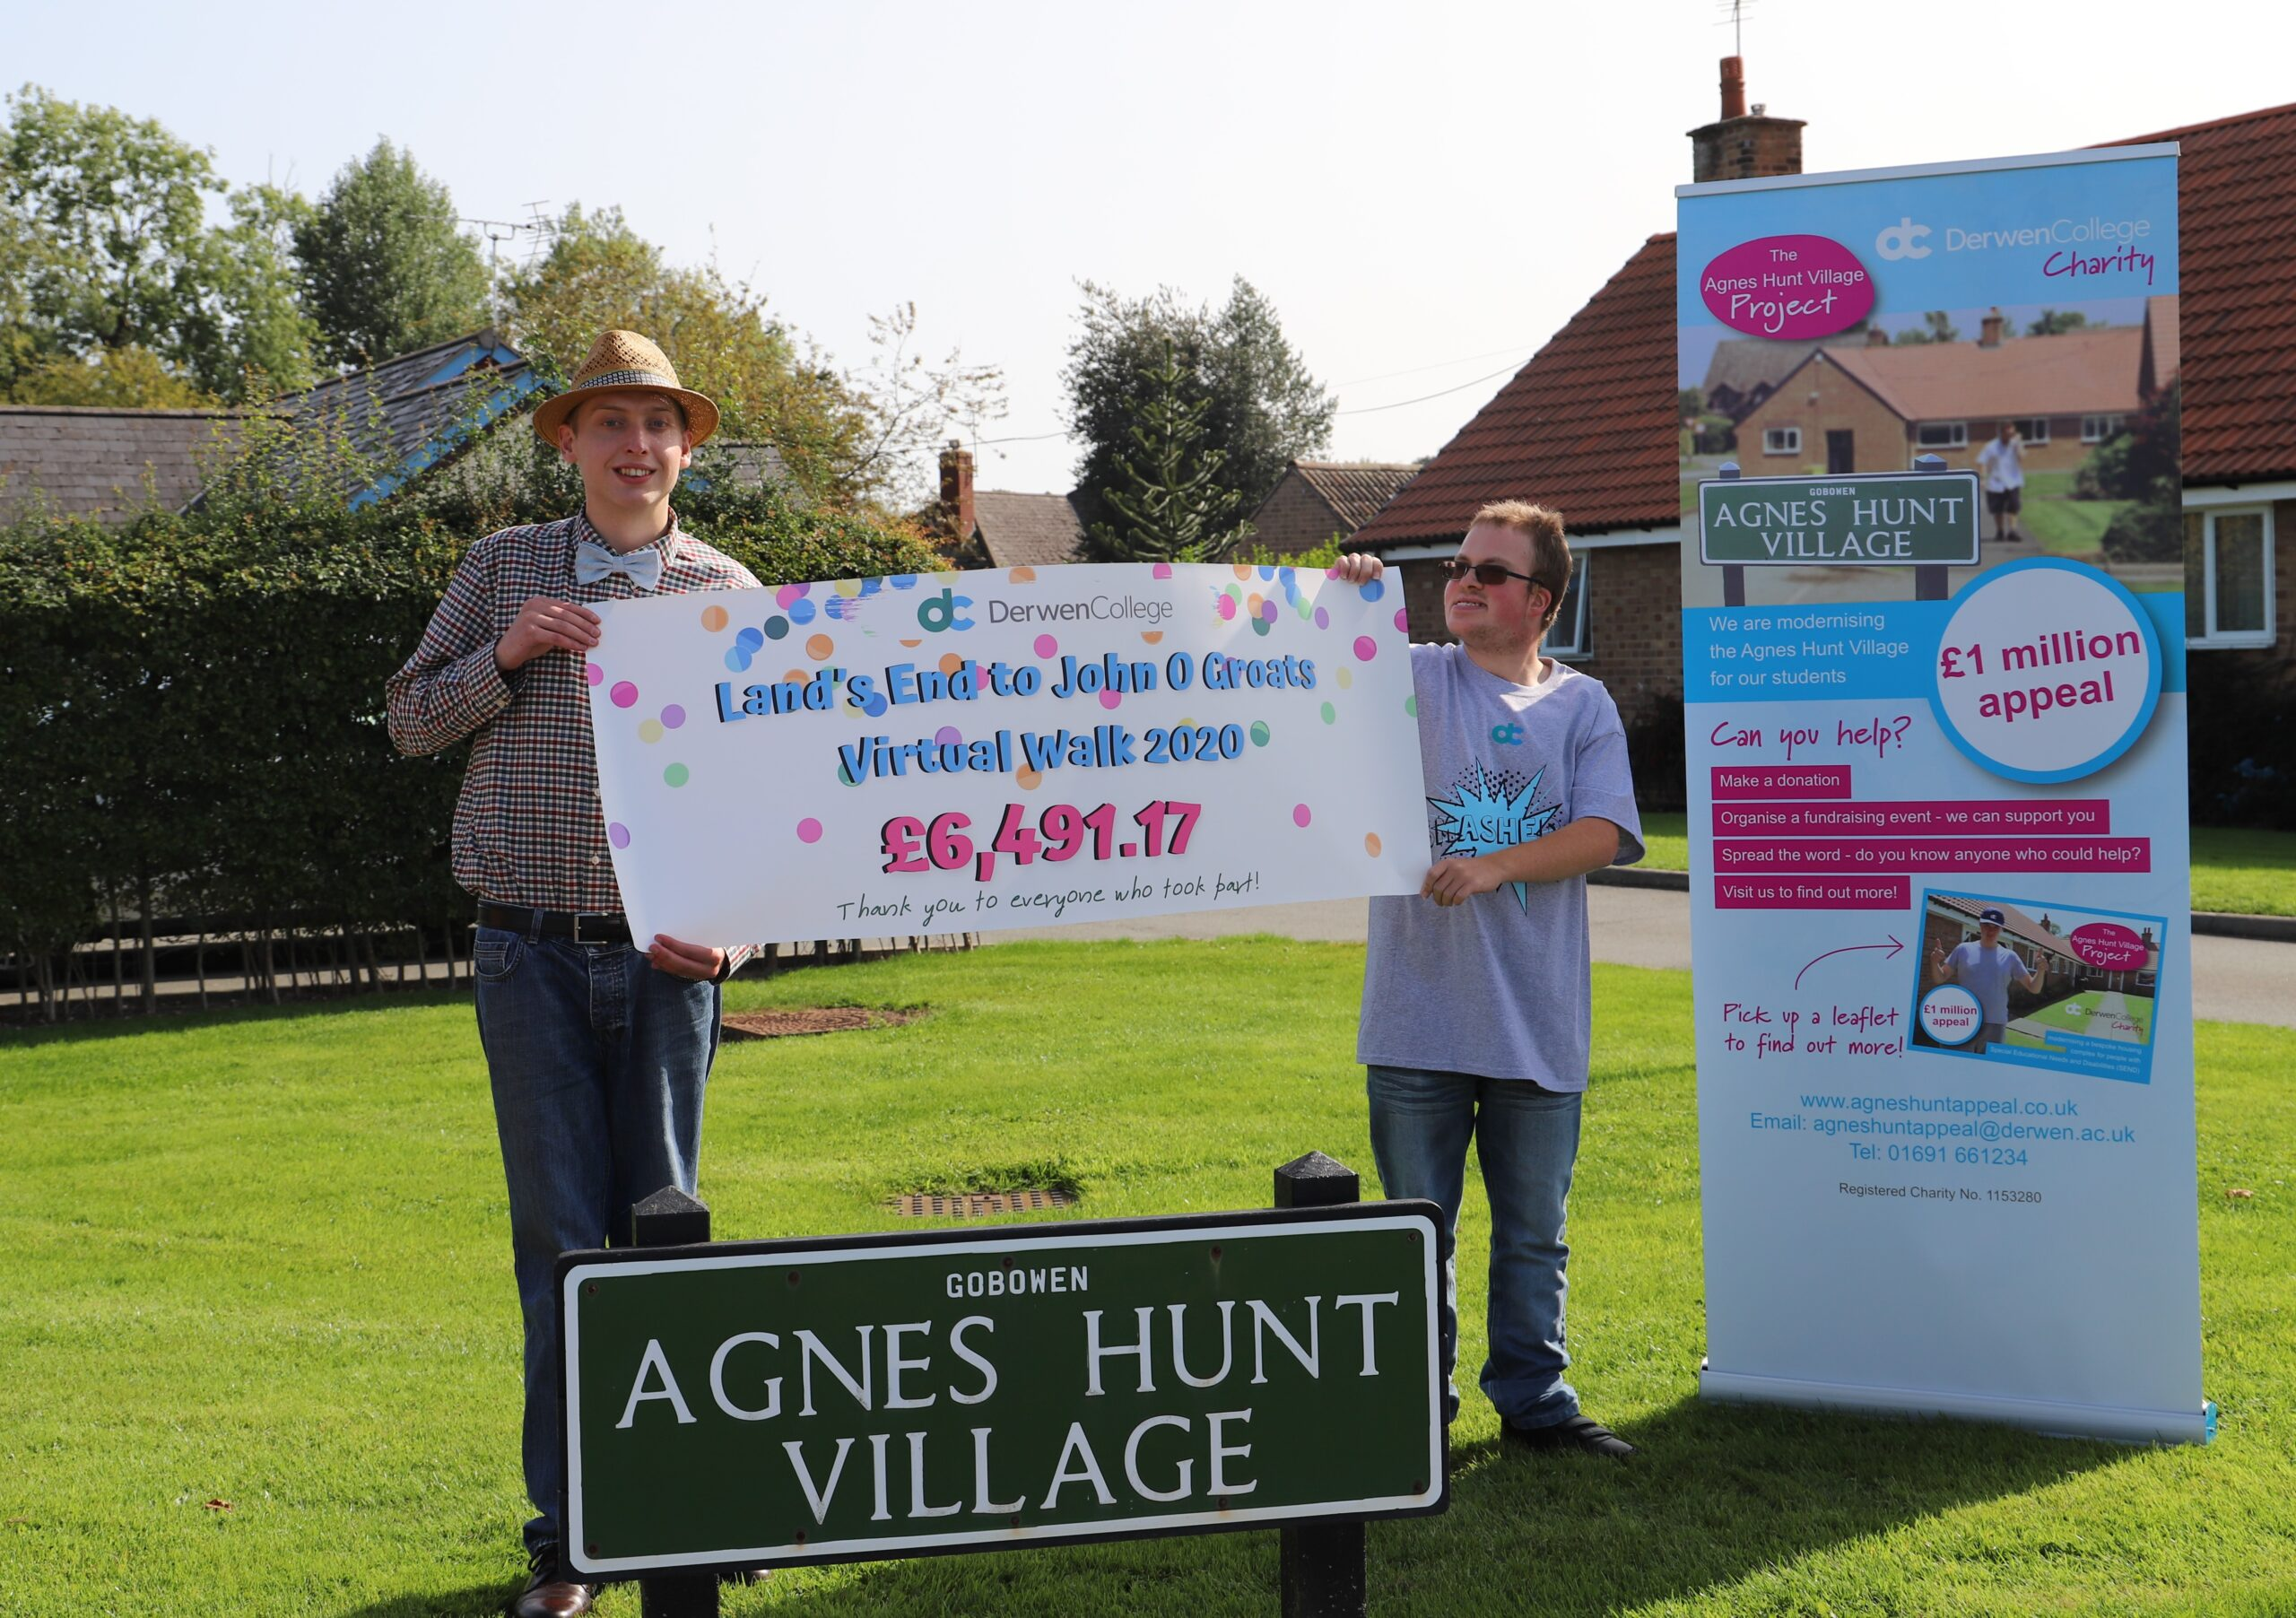 Two Derwen Students holds up a sign declaring £6491.17 was raised as part of the Virtual Walk fundraising. They are standing outside Agnes Hunt Village